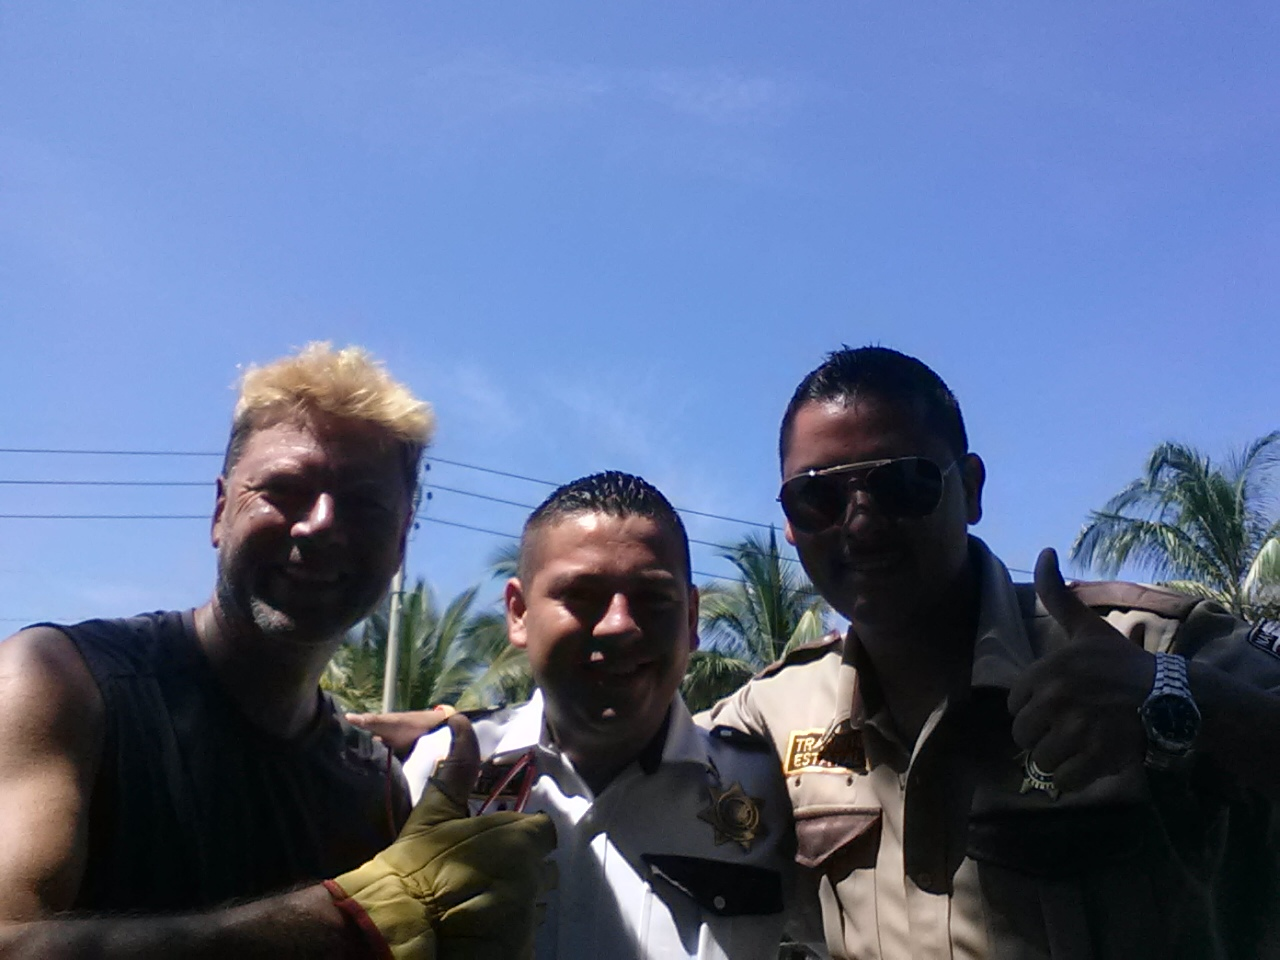 My new (paid) friends from the San Blas PD